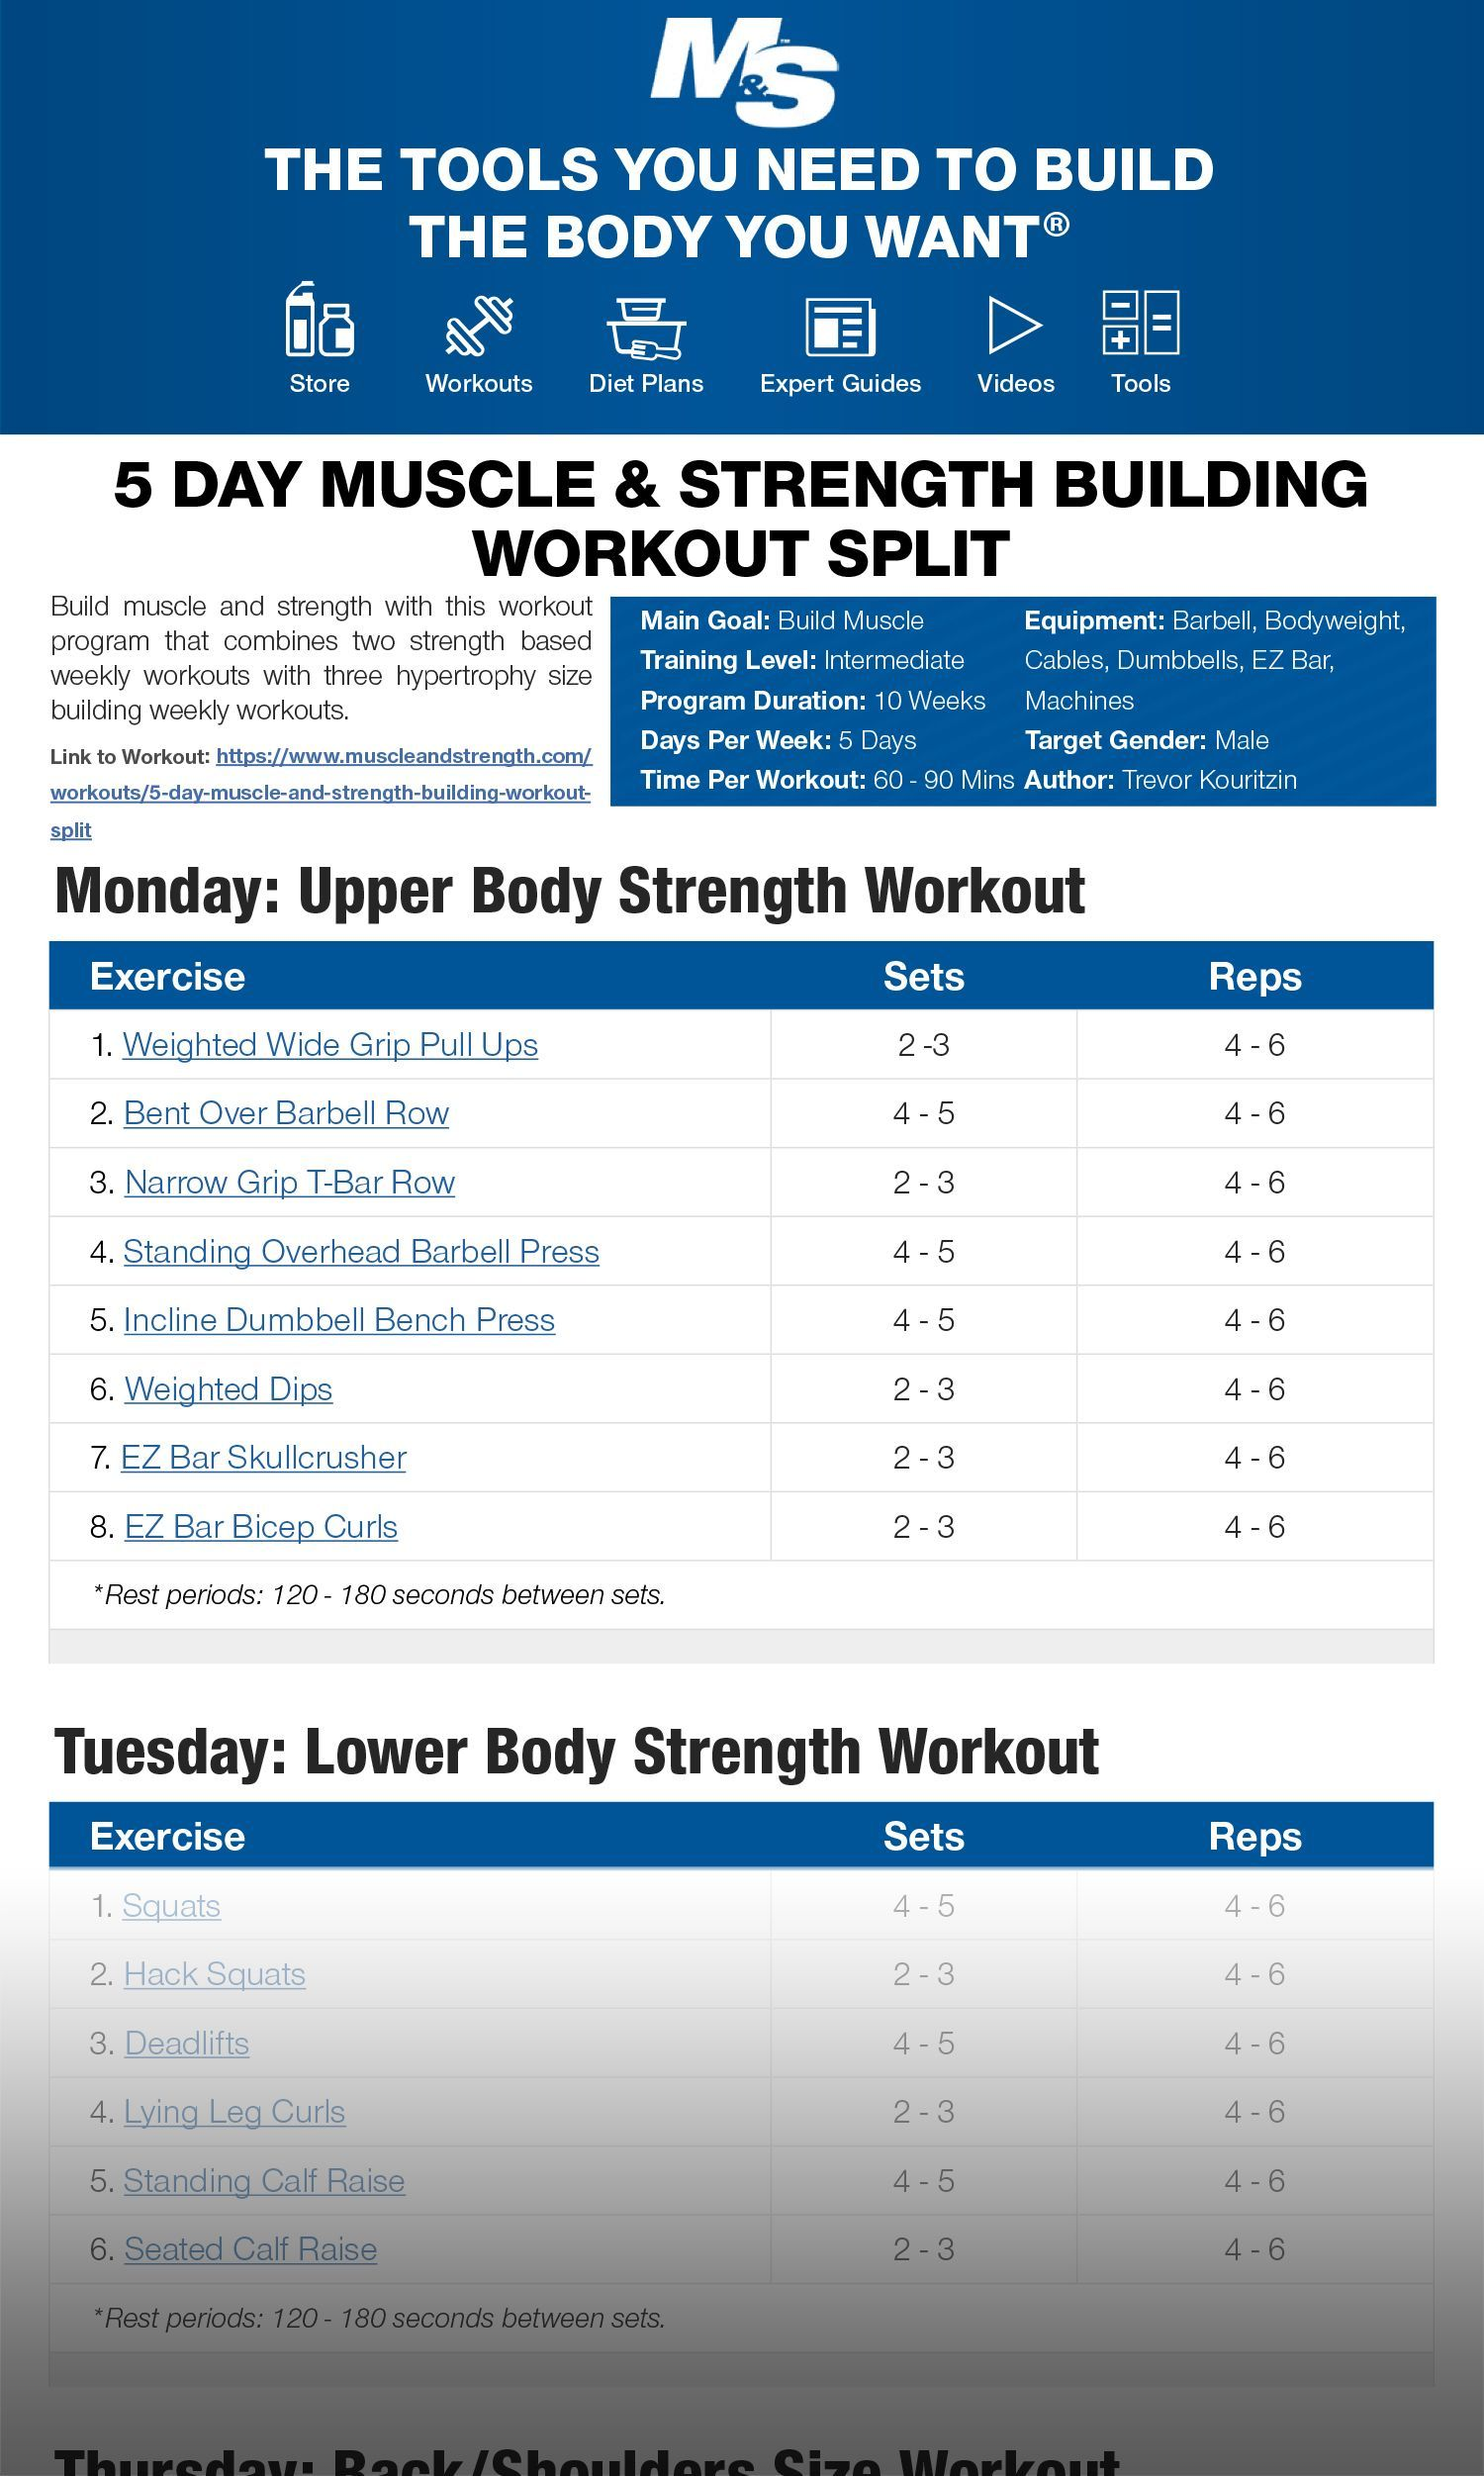 #Building #day #muscle #Split #Strength #weight training workouts #workout Build muscle and strength...